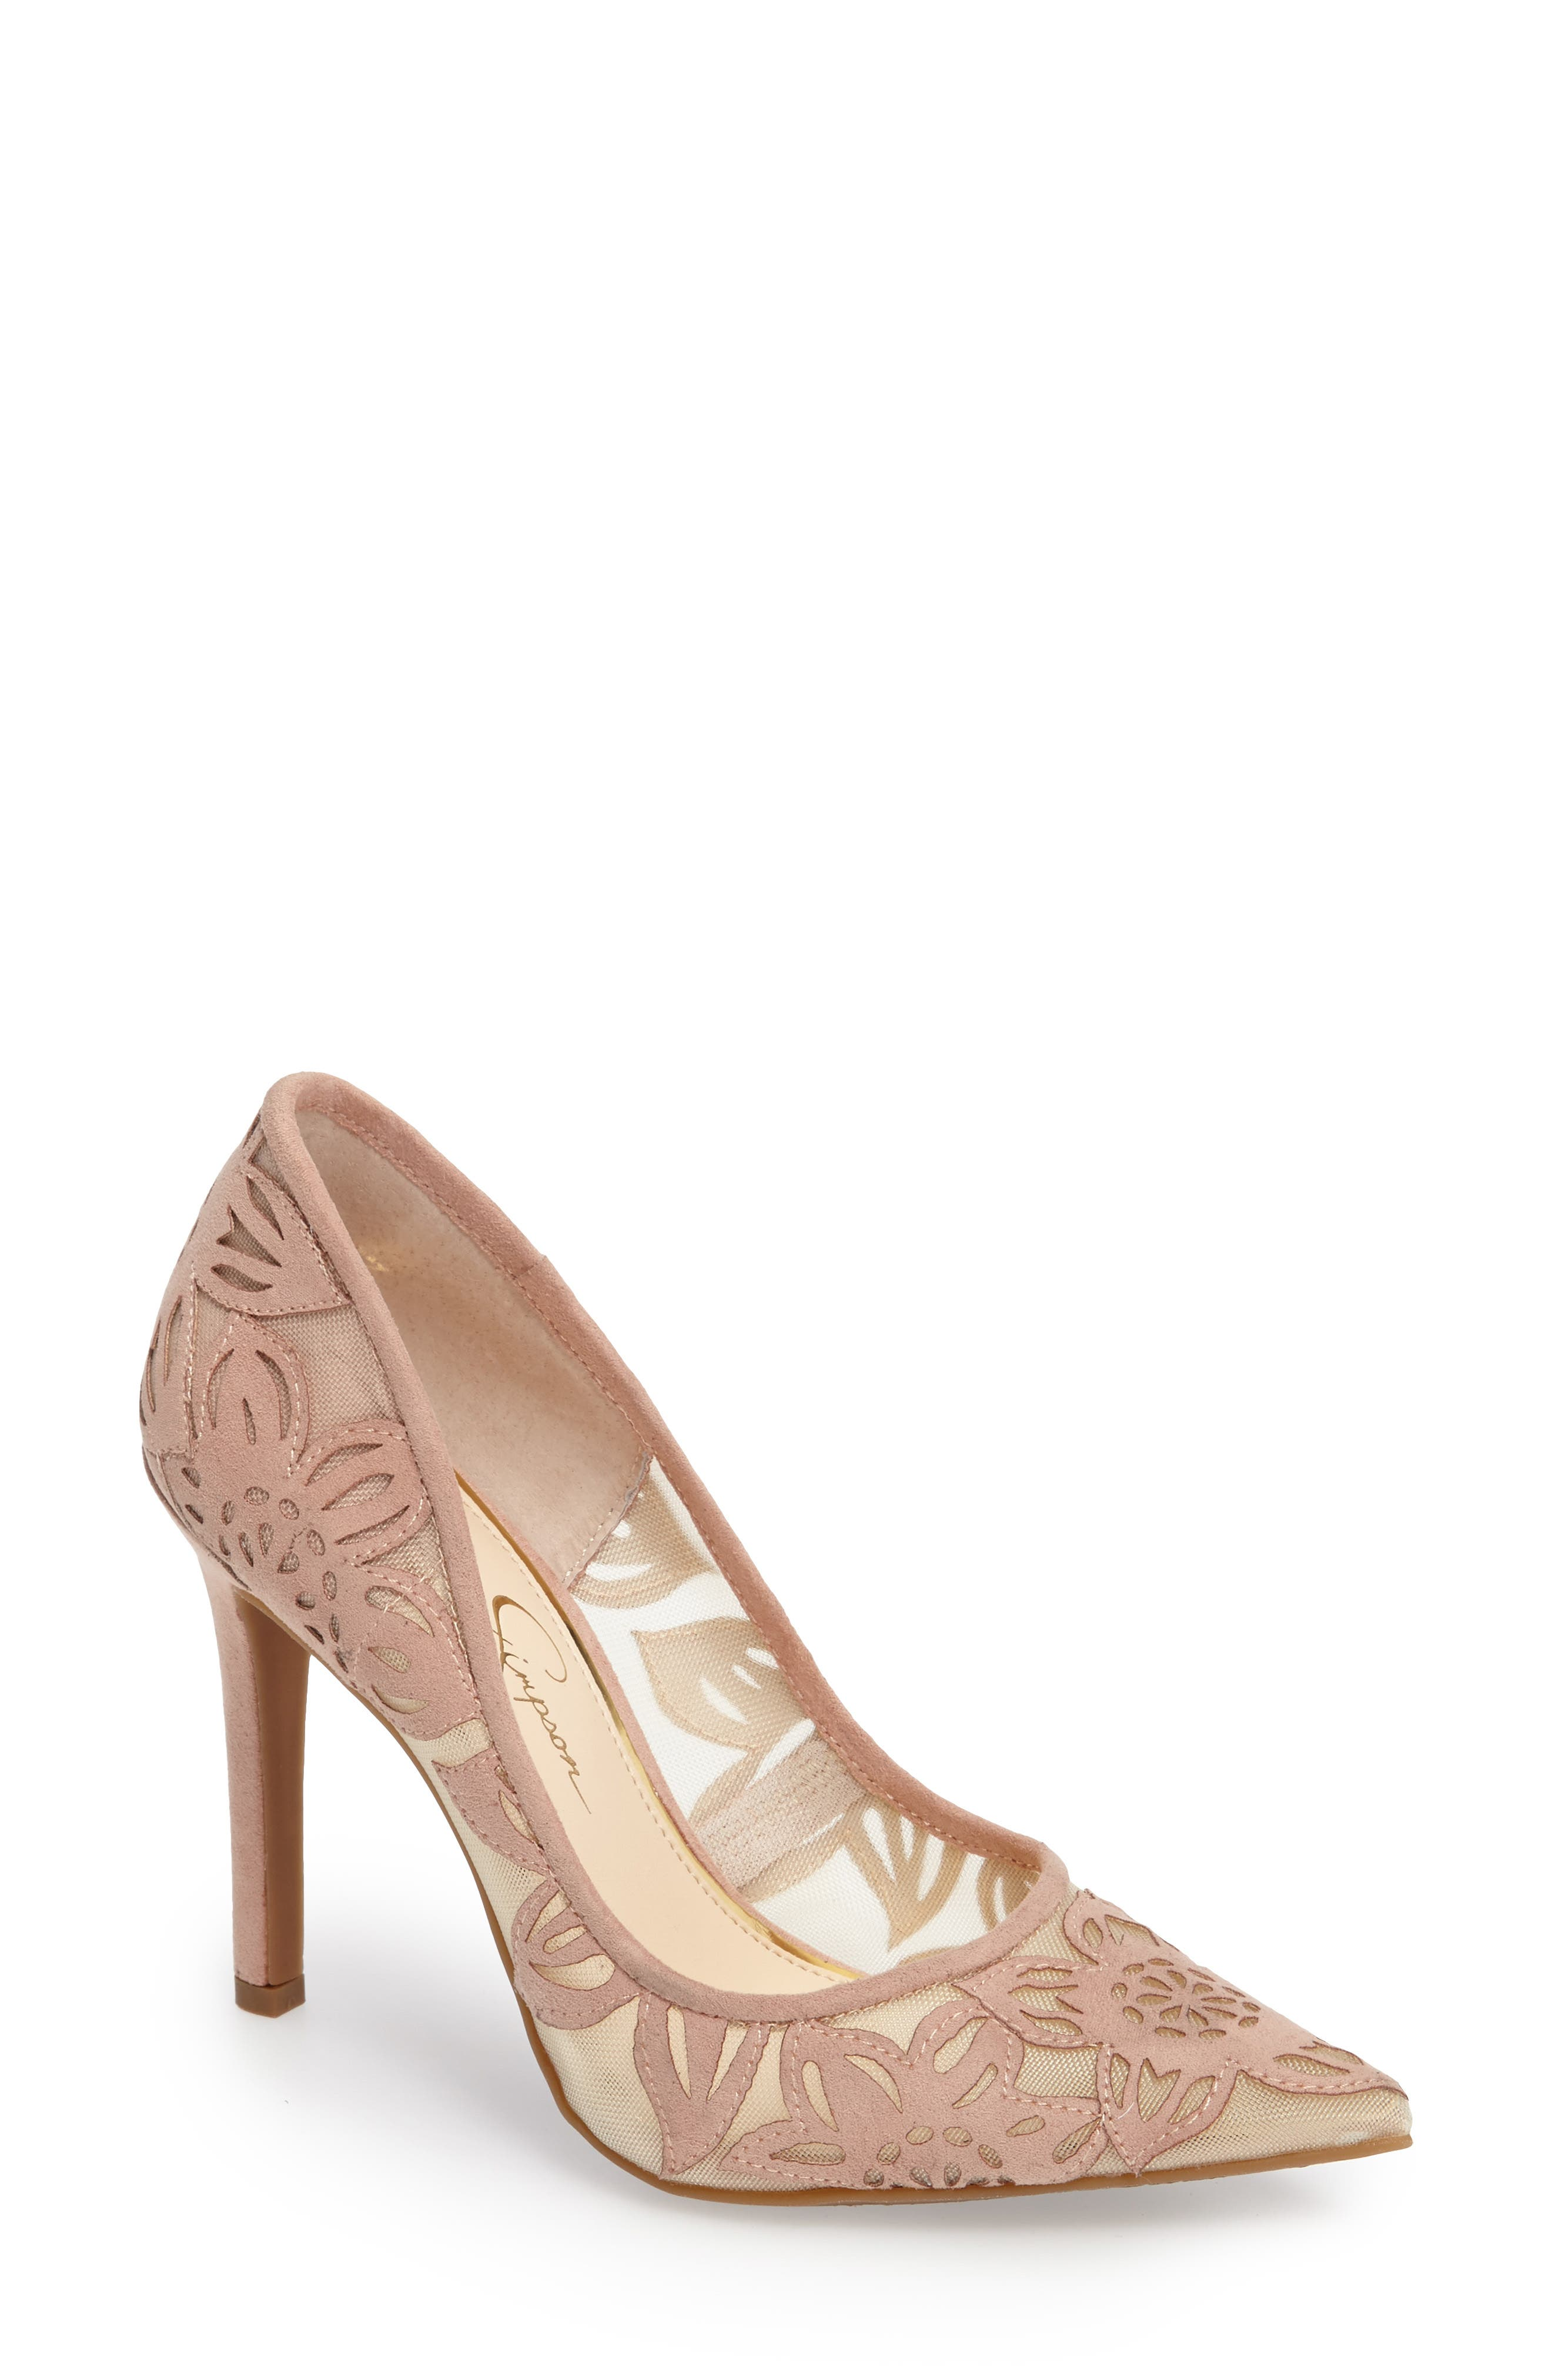 Alternate Image 1 Selected - Jessica Simpson Charese Pointy Toe Pump (Women)